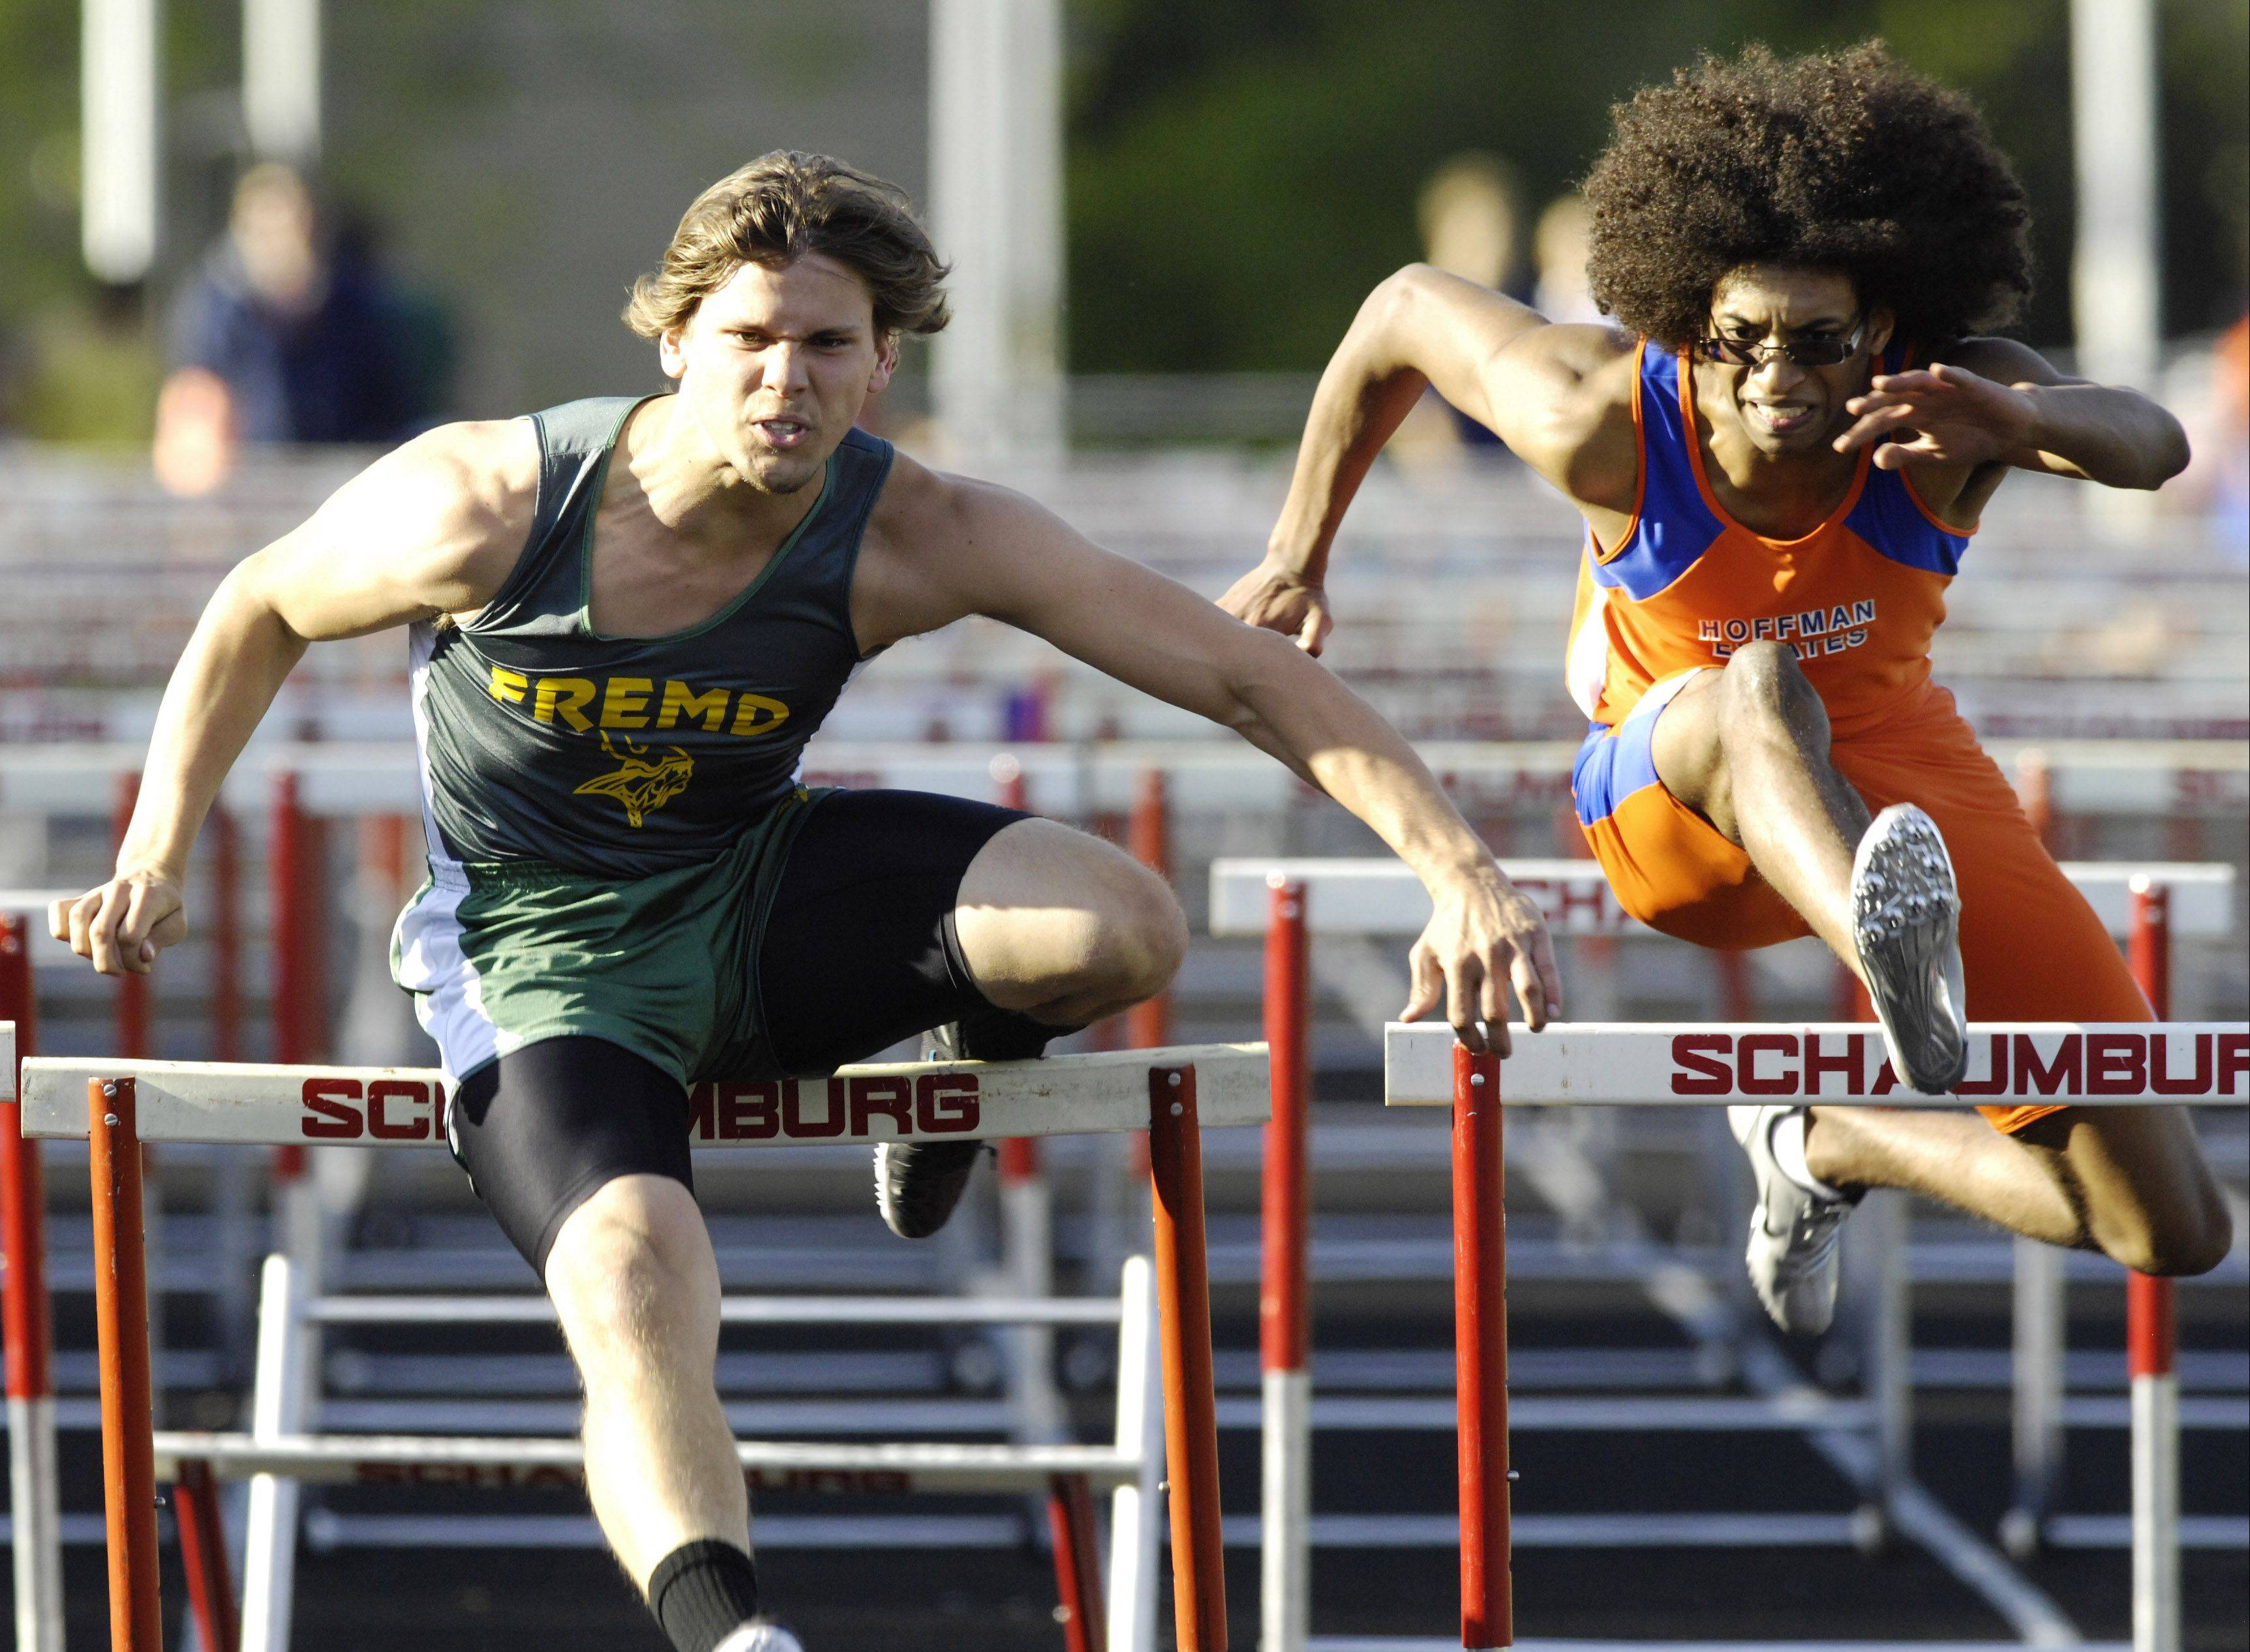 Fremd's Davy Mellado, left, and Hoffman Estates' James Vaughan run in the 110-meter high hurdles preliminaries during Tuesday's Mid-Suburban West boys track championships at Schaumburg.